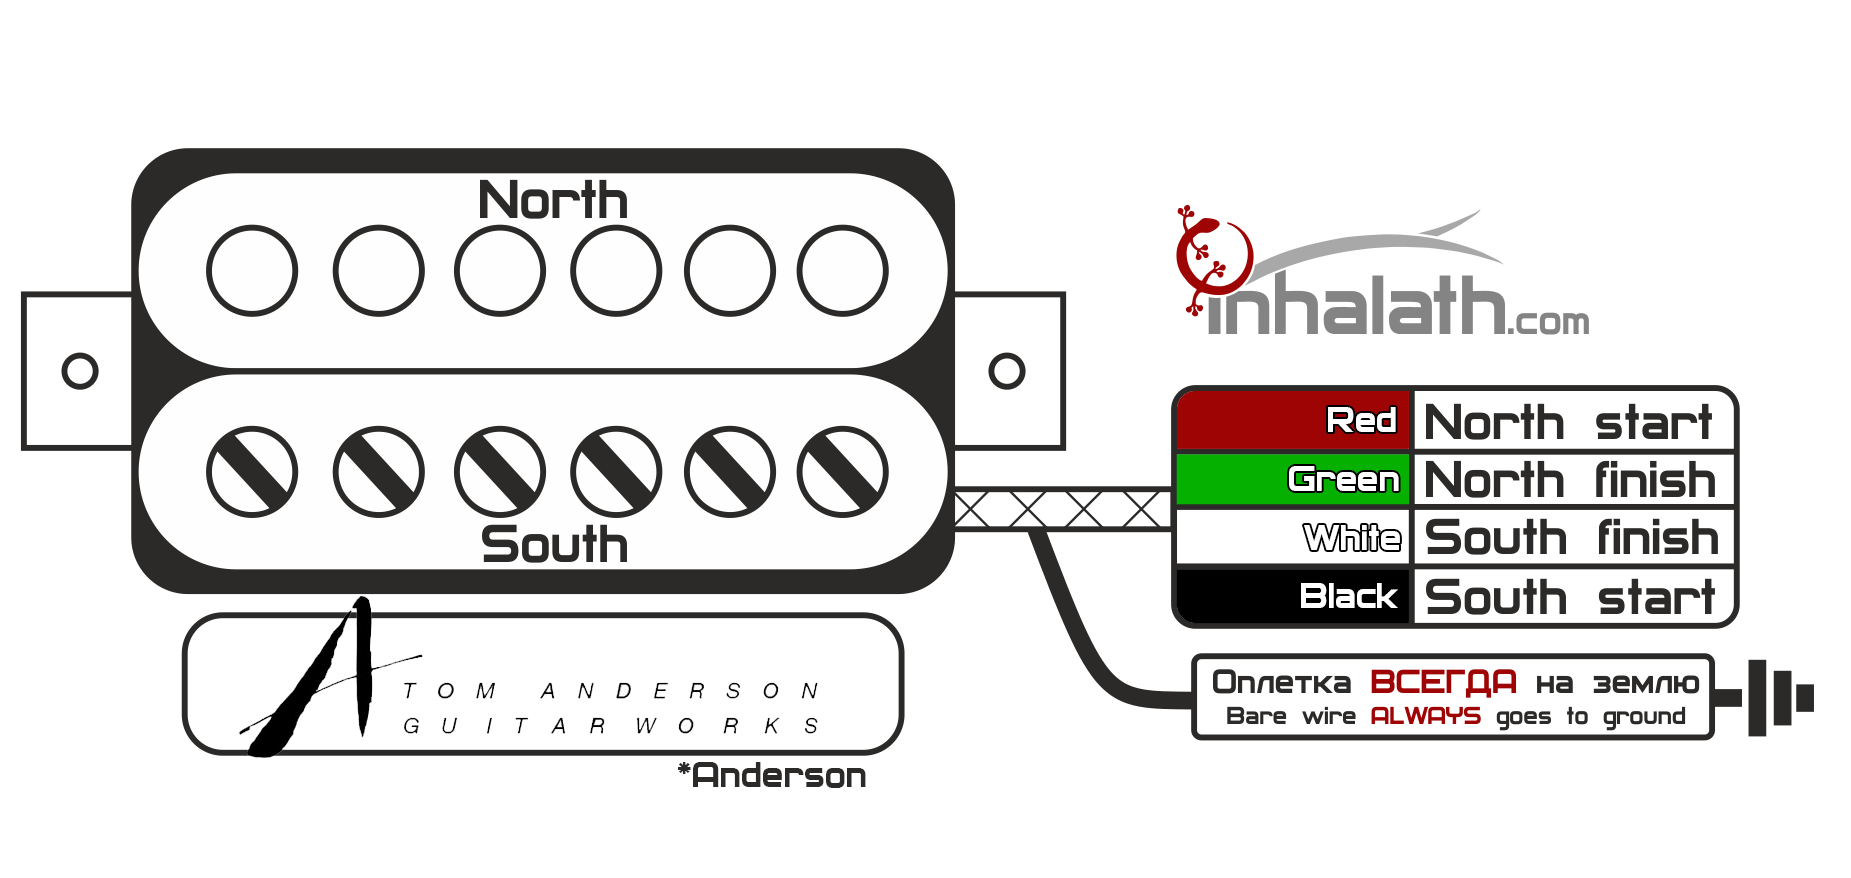 suhr guitar wiring diagram wiring diagram HSS Pickup Wiring Diagram wrg 6760] tom anderson guitar wiring diagramsuhr guitar wiring diagram �������� ����� ��������������� (pickup